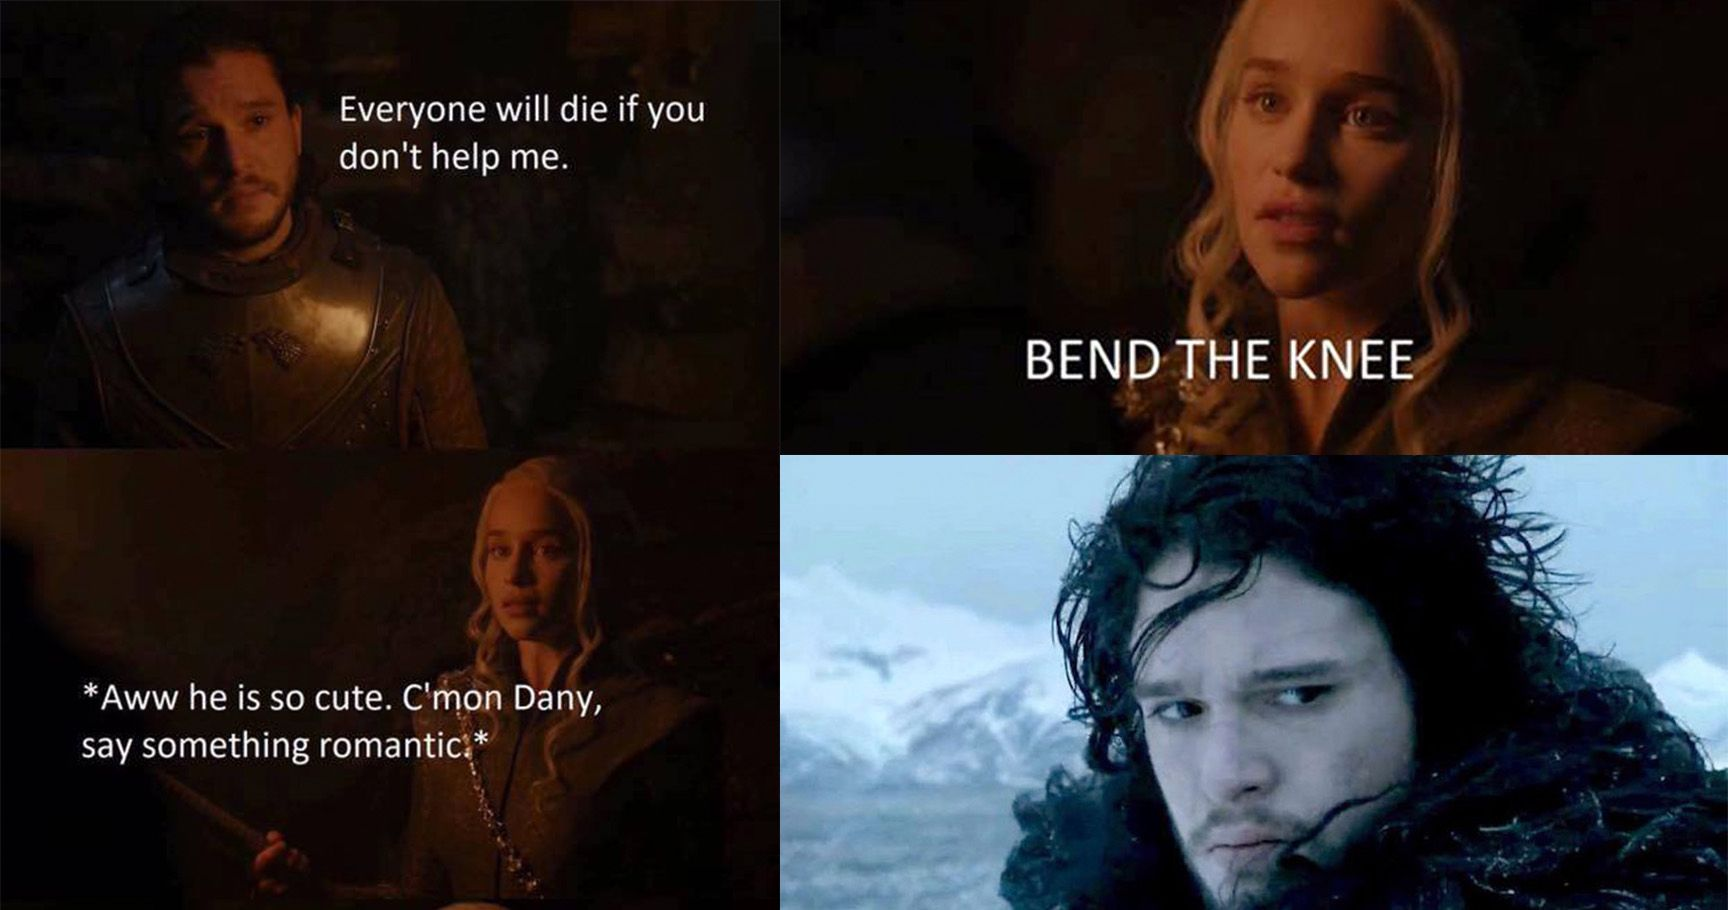 15 Fresh & Hysterical 'Game Of Thrones' Memes Straight From Season 7